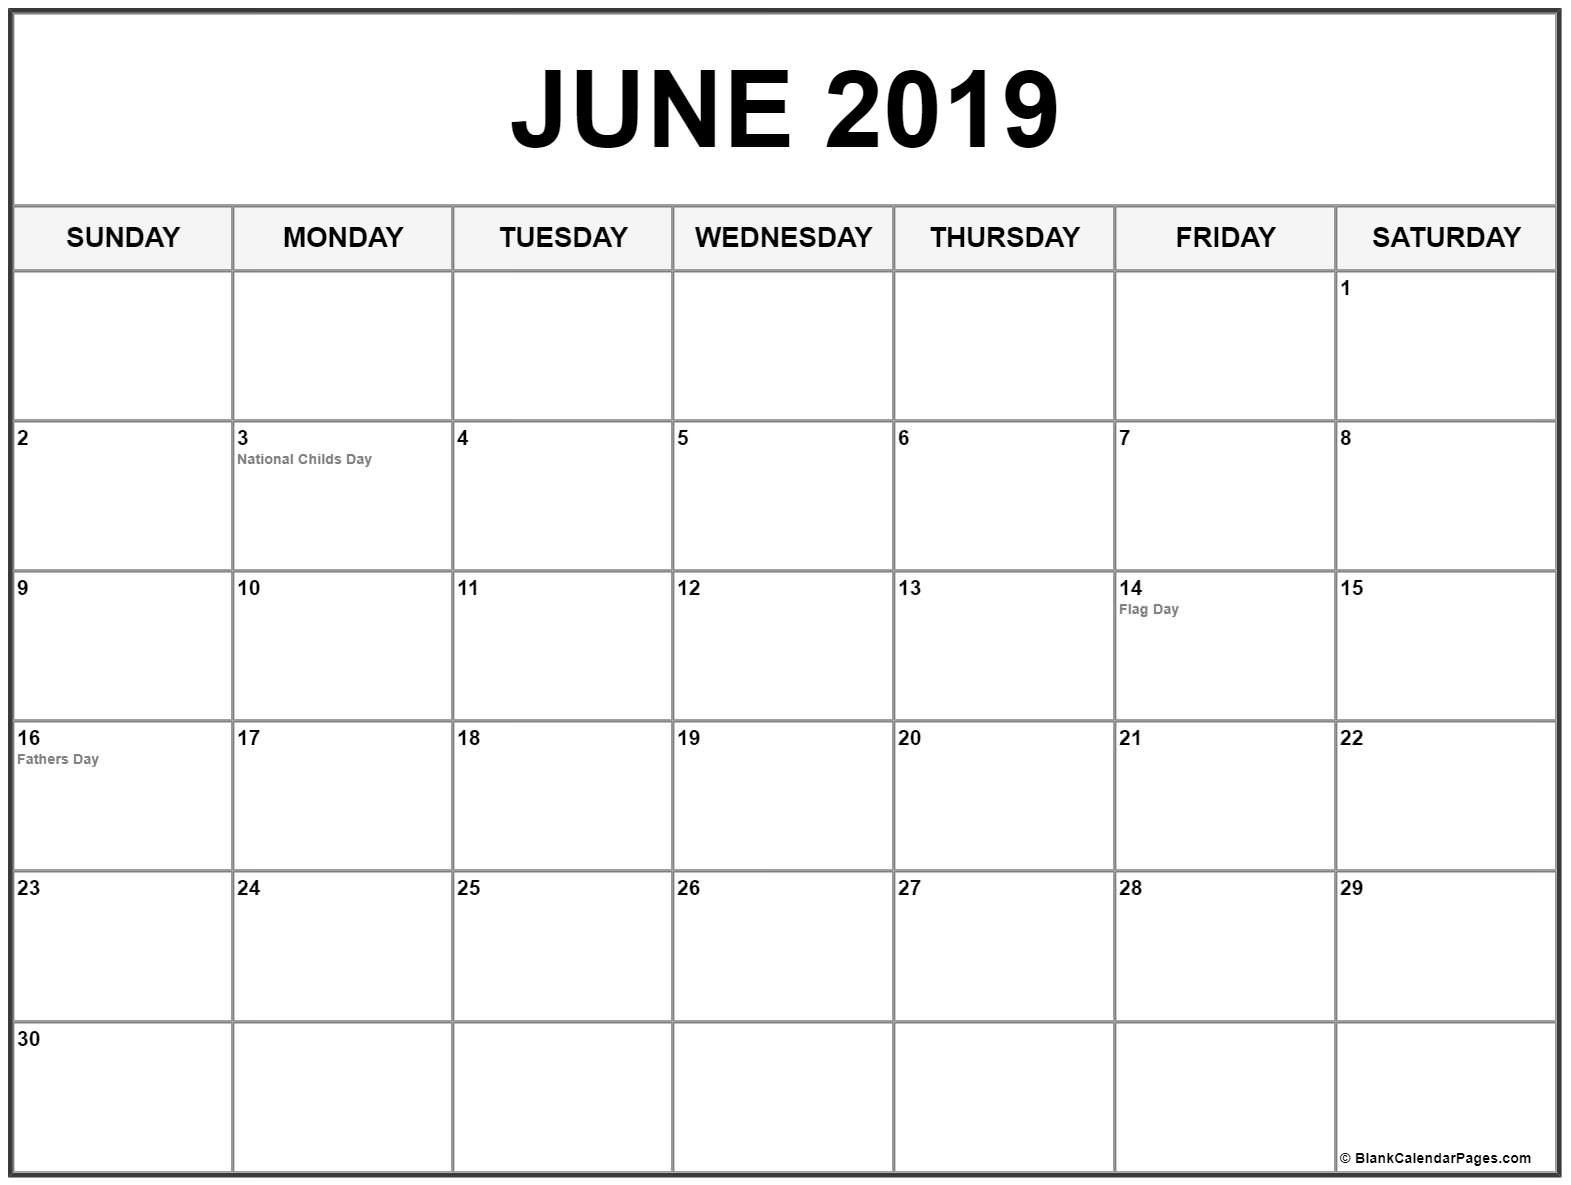 Collection Of June 2019 Calendars With Holidays Calendar 2019 June